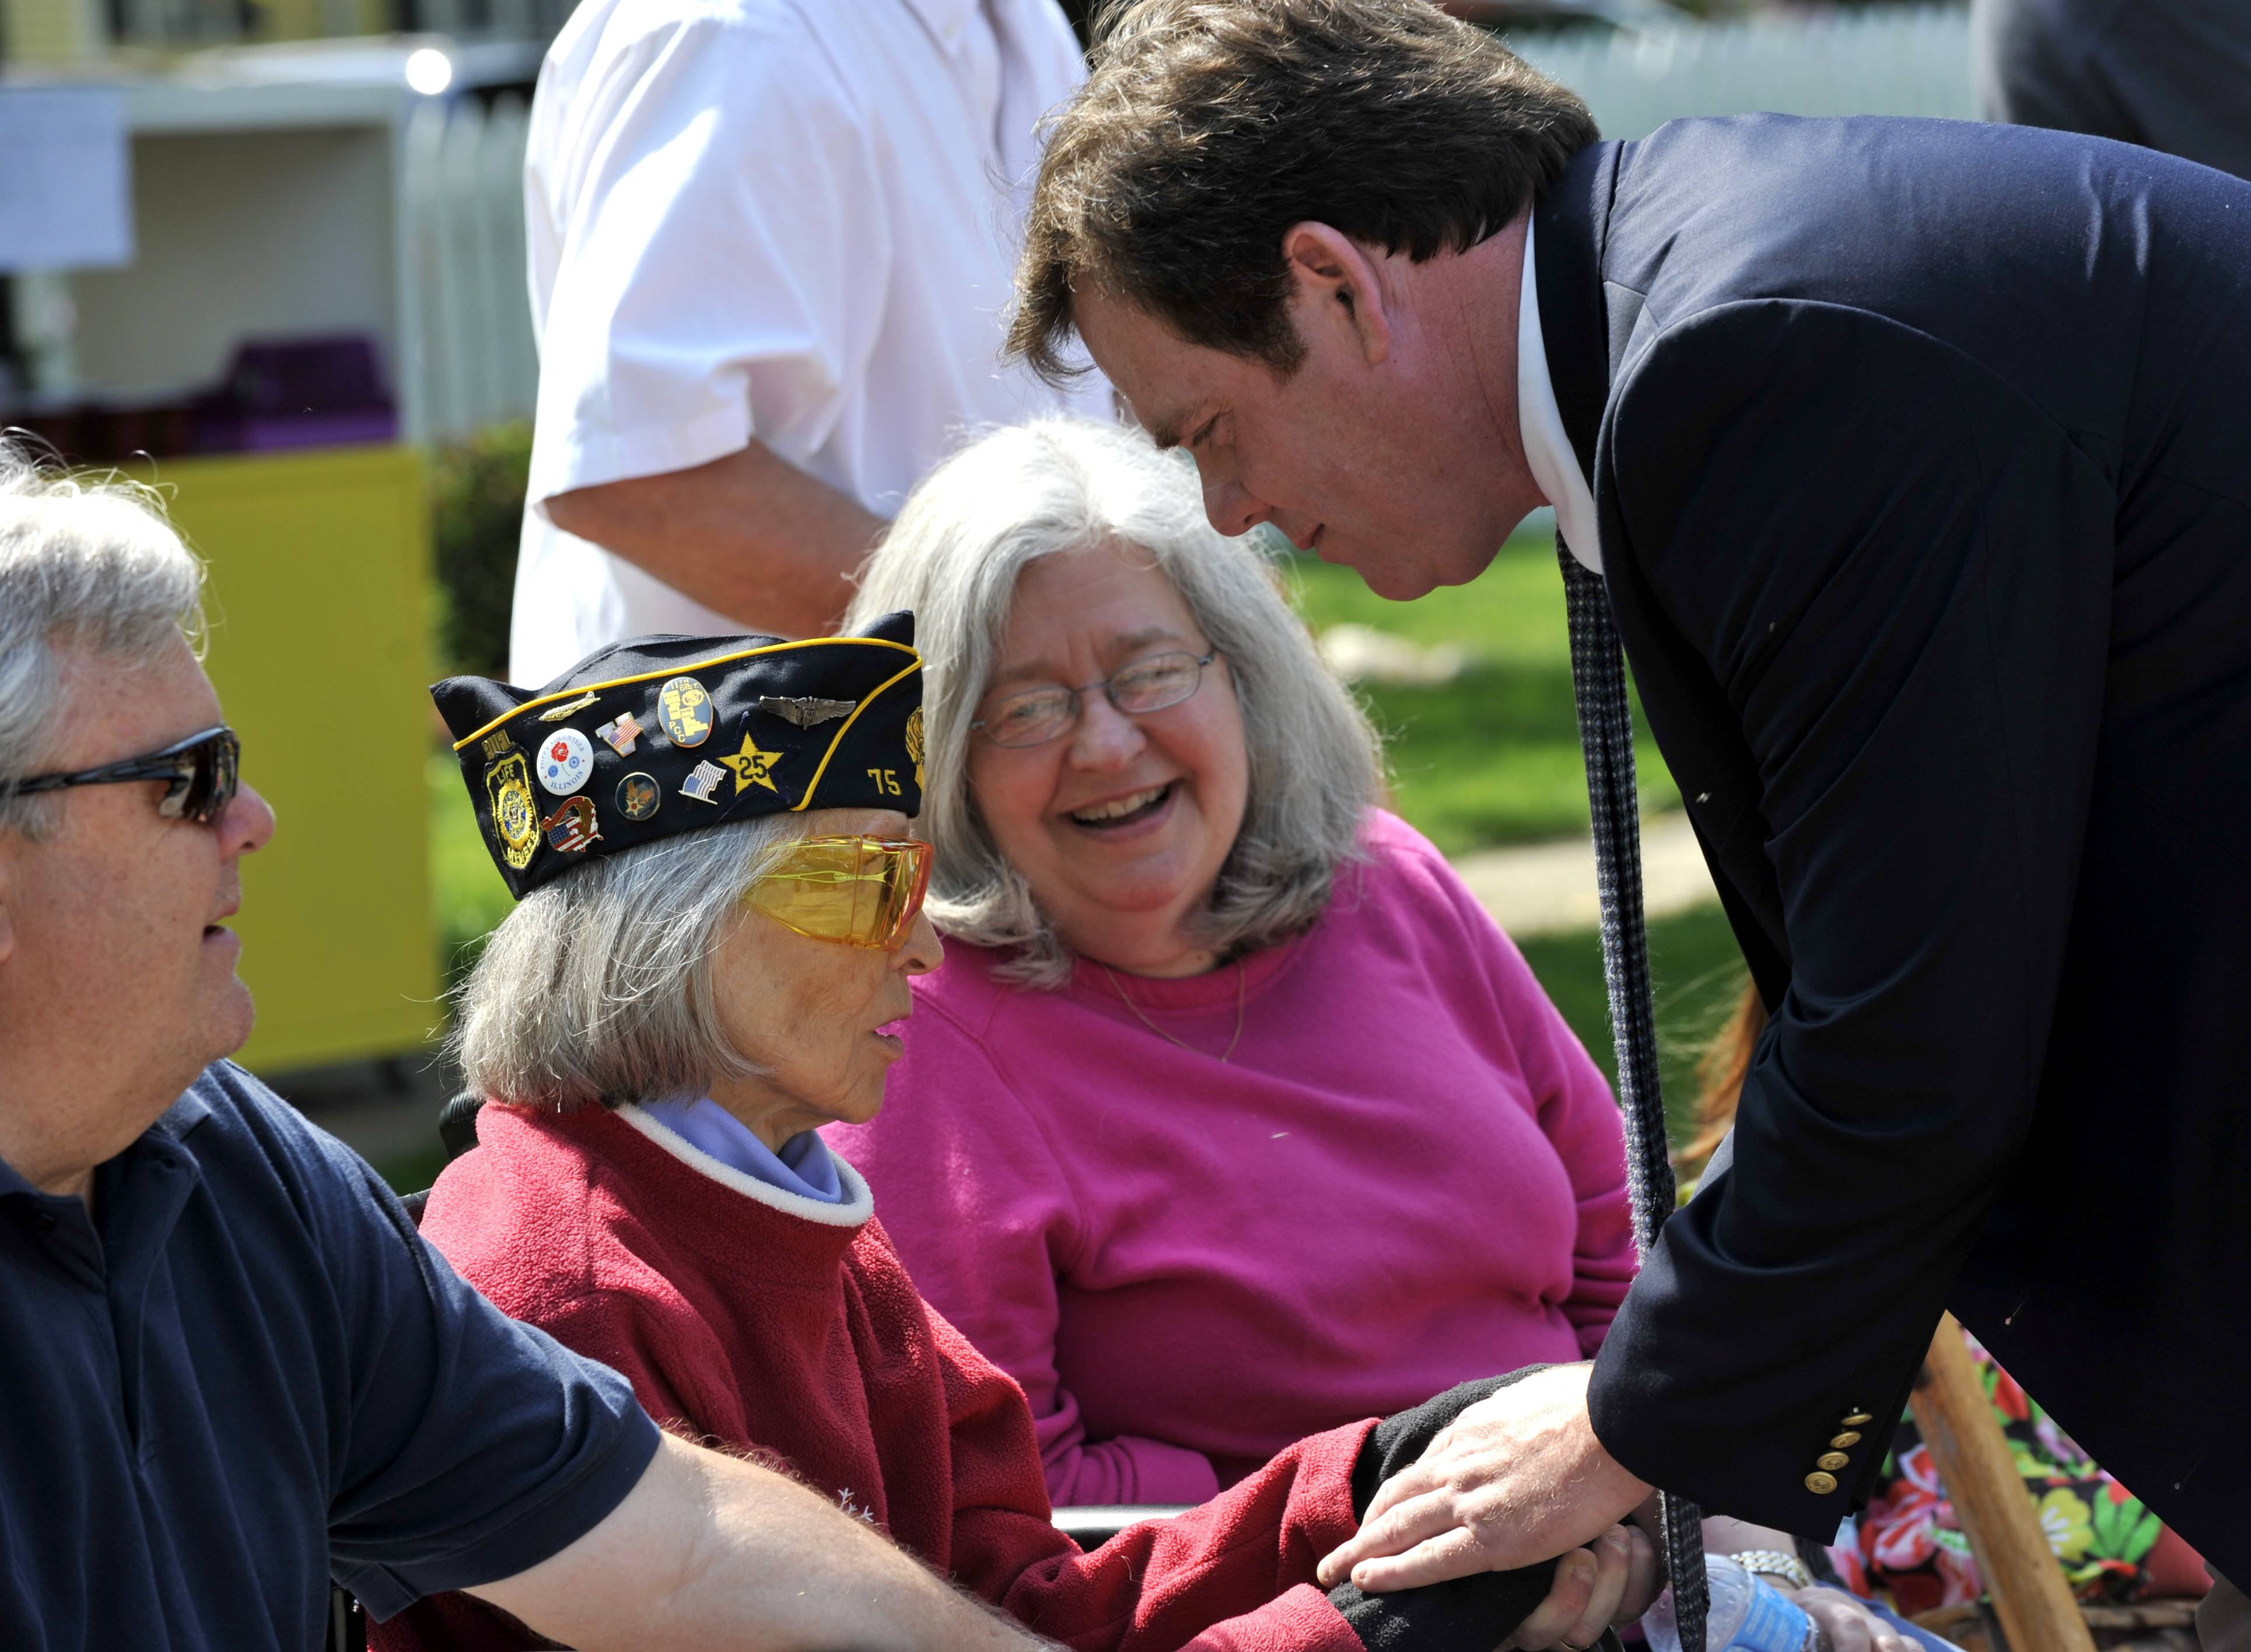 Geneva Mayor Kevin Burns greets Susanna Haroldson, 94, of Geneva at the Geneva Memorial Day parade on Third Street. A World War II veteran, Haroldson served as a flight nurse. She sits with her son Craig Haroldson and daughter-in-law Maggie Haroldson, both of Geneva.